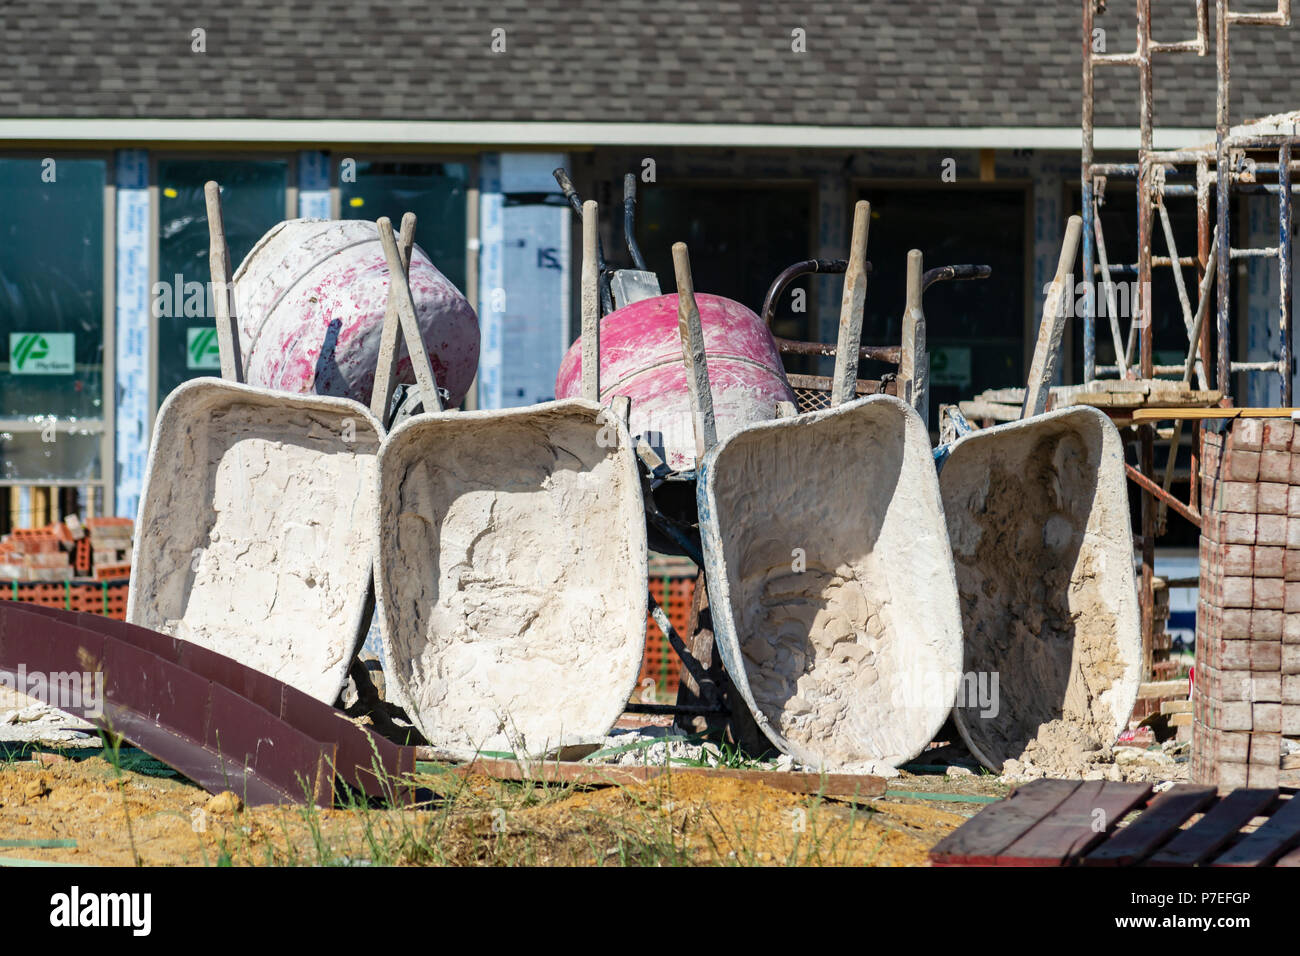 Row of wheelbarrows after a hard days work - Stock Image